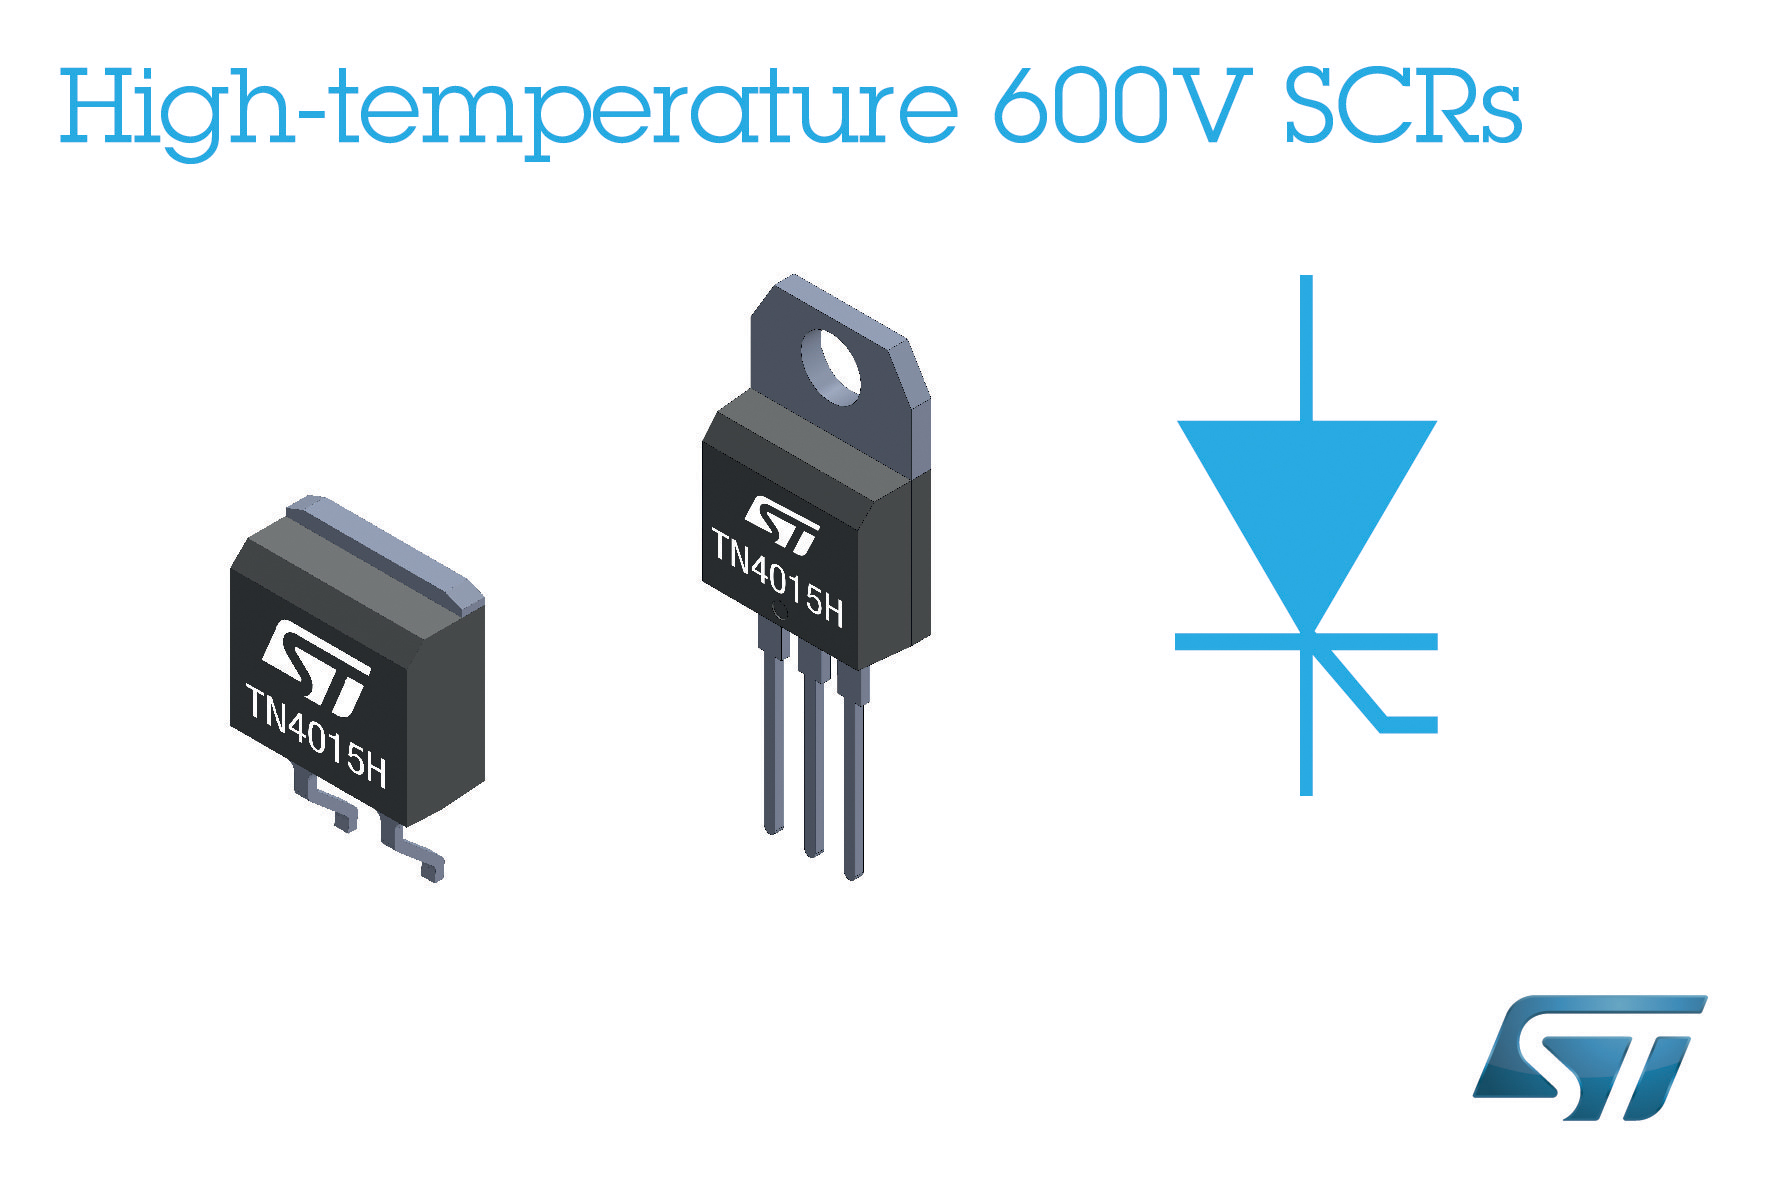 High Temperature Silicon Power Switches From Stmicroelectronics Solid State Relay Circuit Further Clock Pulse Generator Enhance Reliability In Motorcycles And Industrial Applications